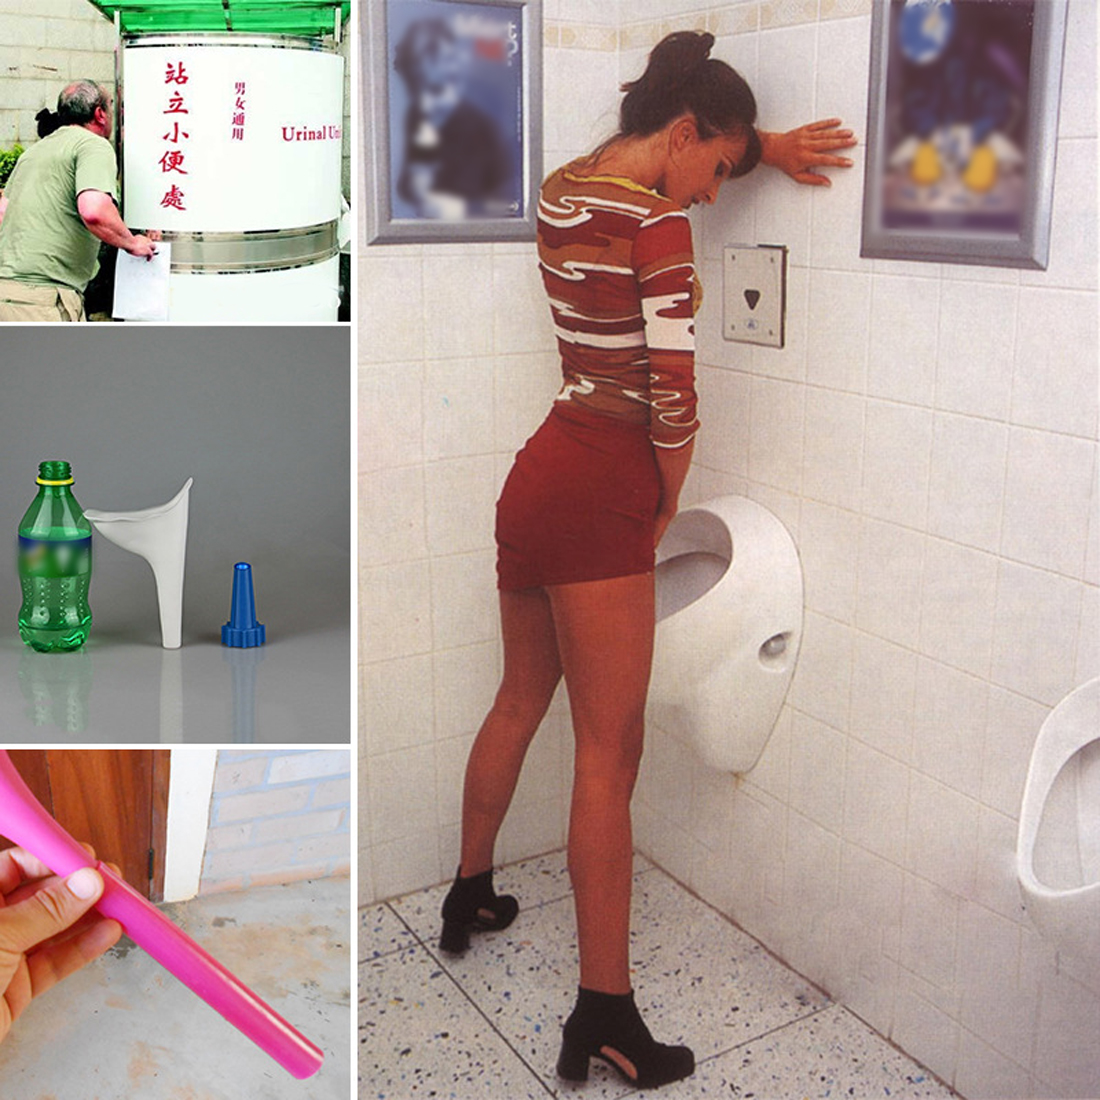 Portable Women Soft Urination Device Stand Up & Pee for Outdoor & Travel 1